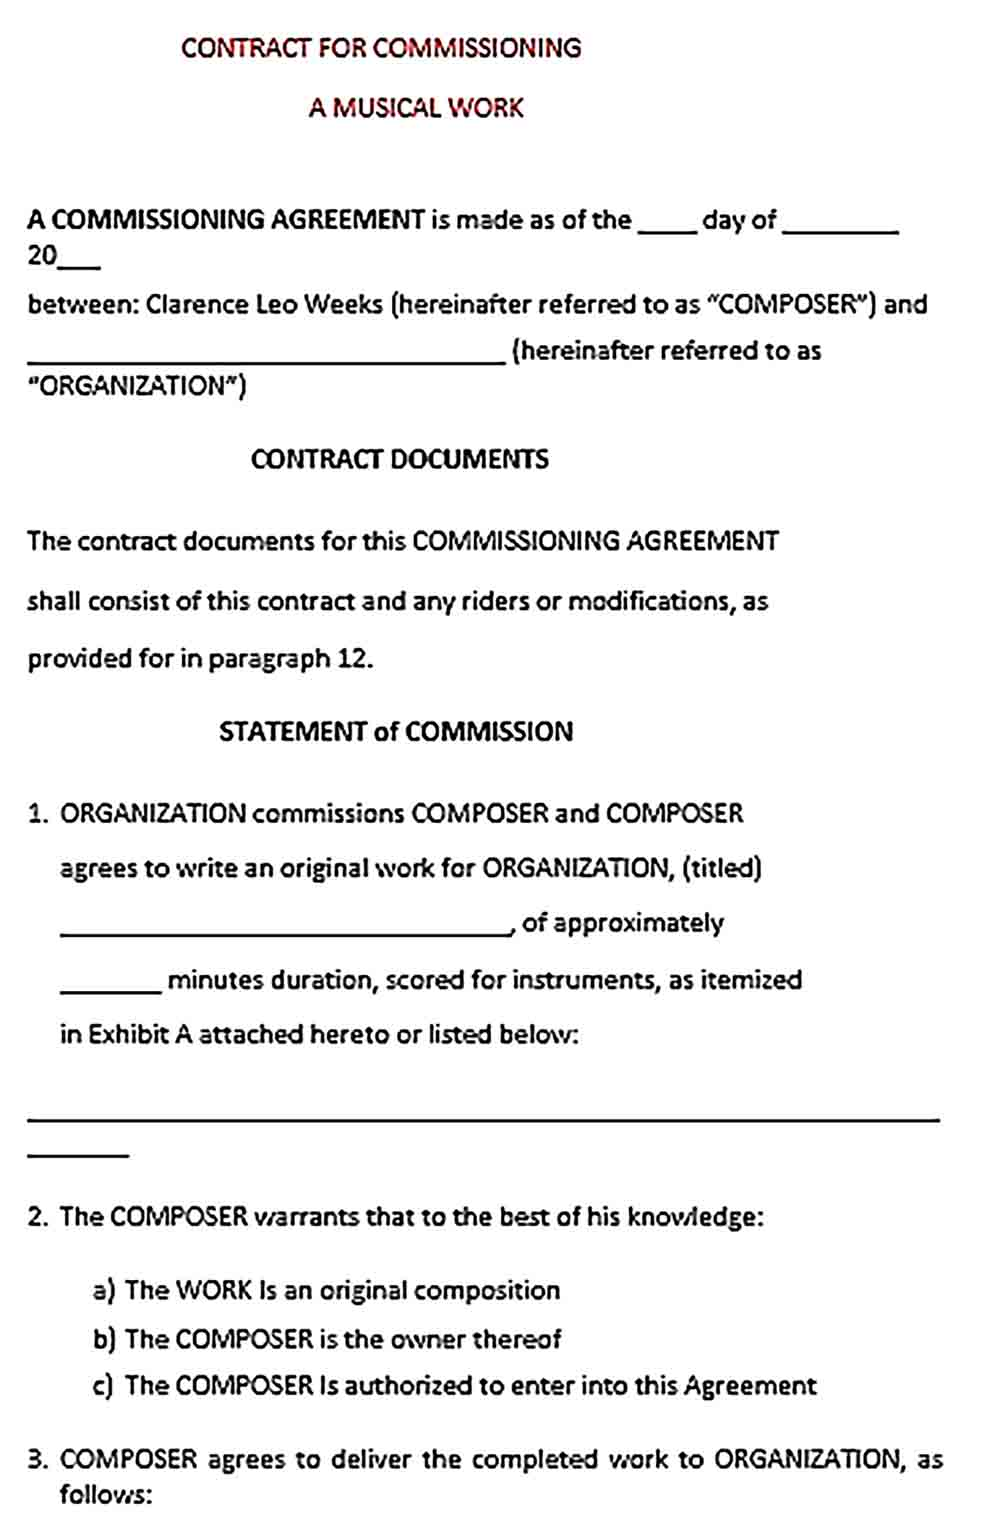 Sample Musical Work Contract Commission Agreement